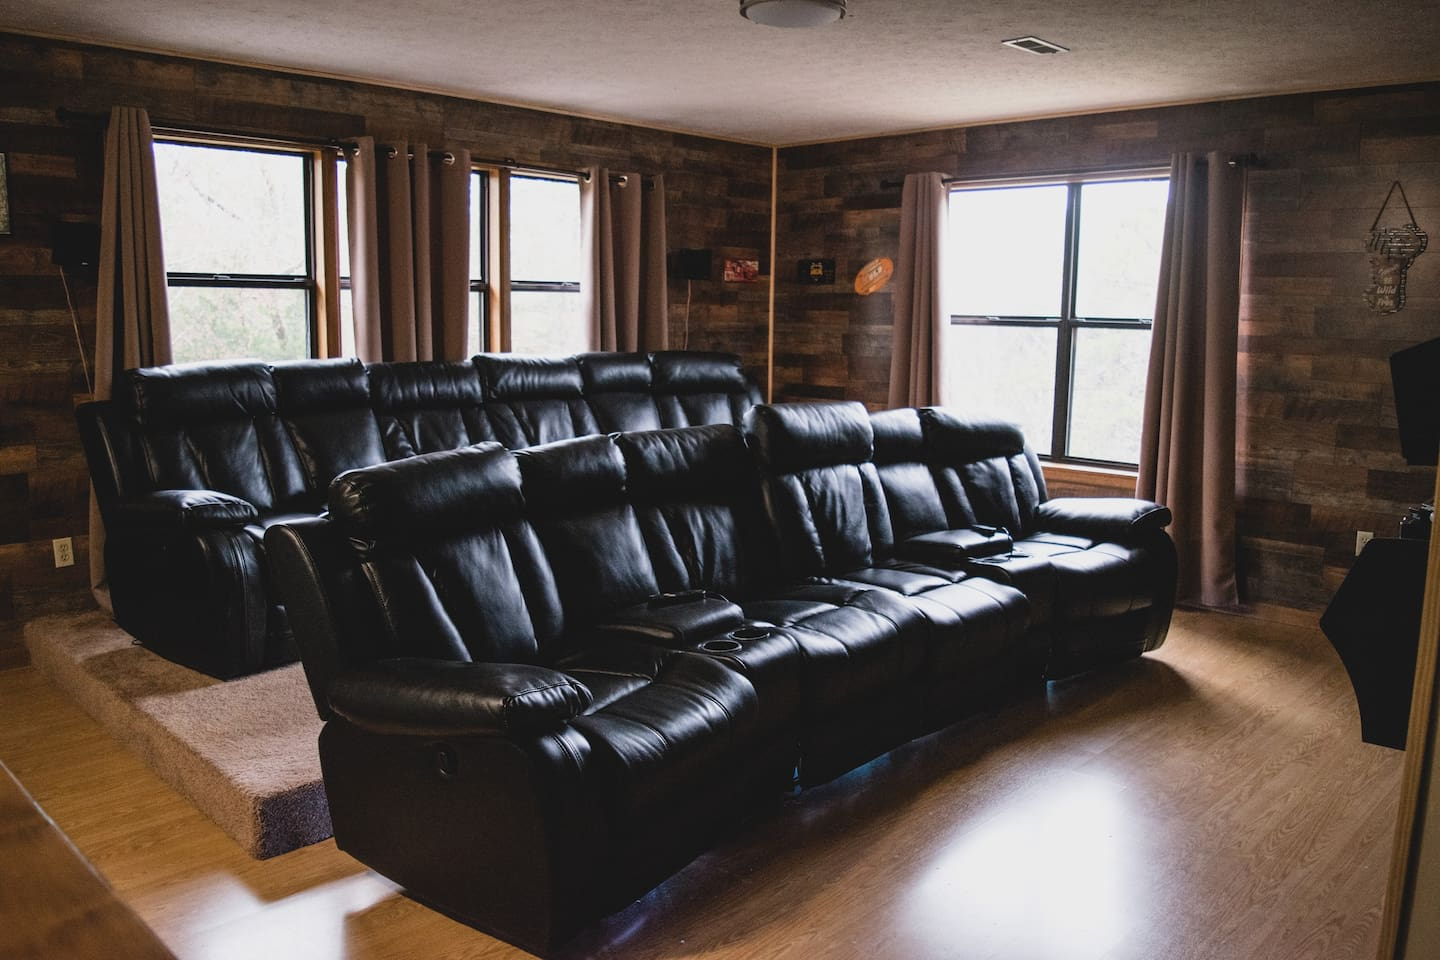 Cinema Theater for 8 with power reclining seats